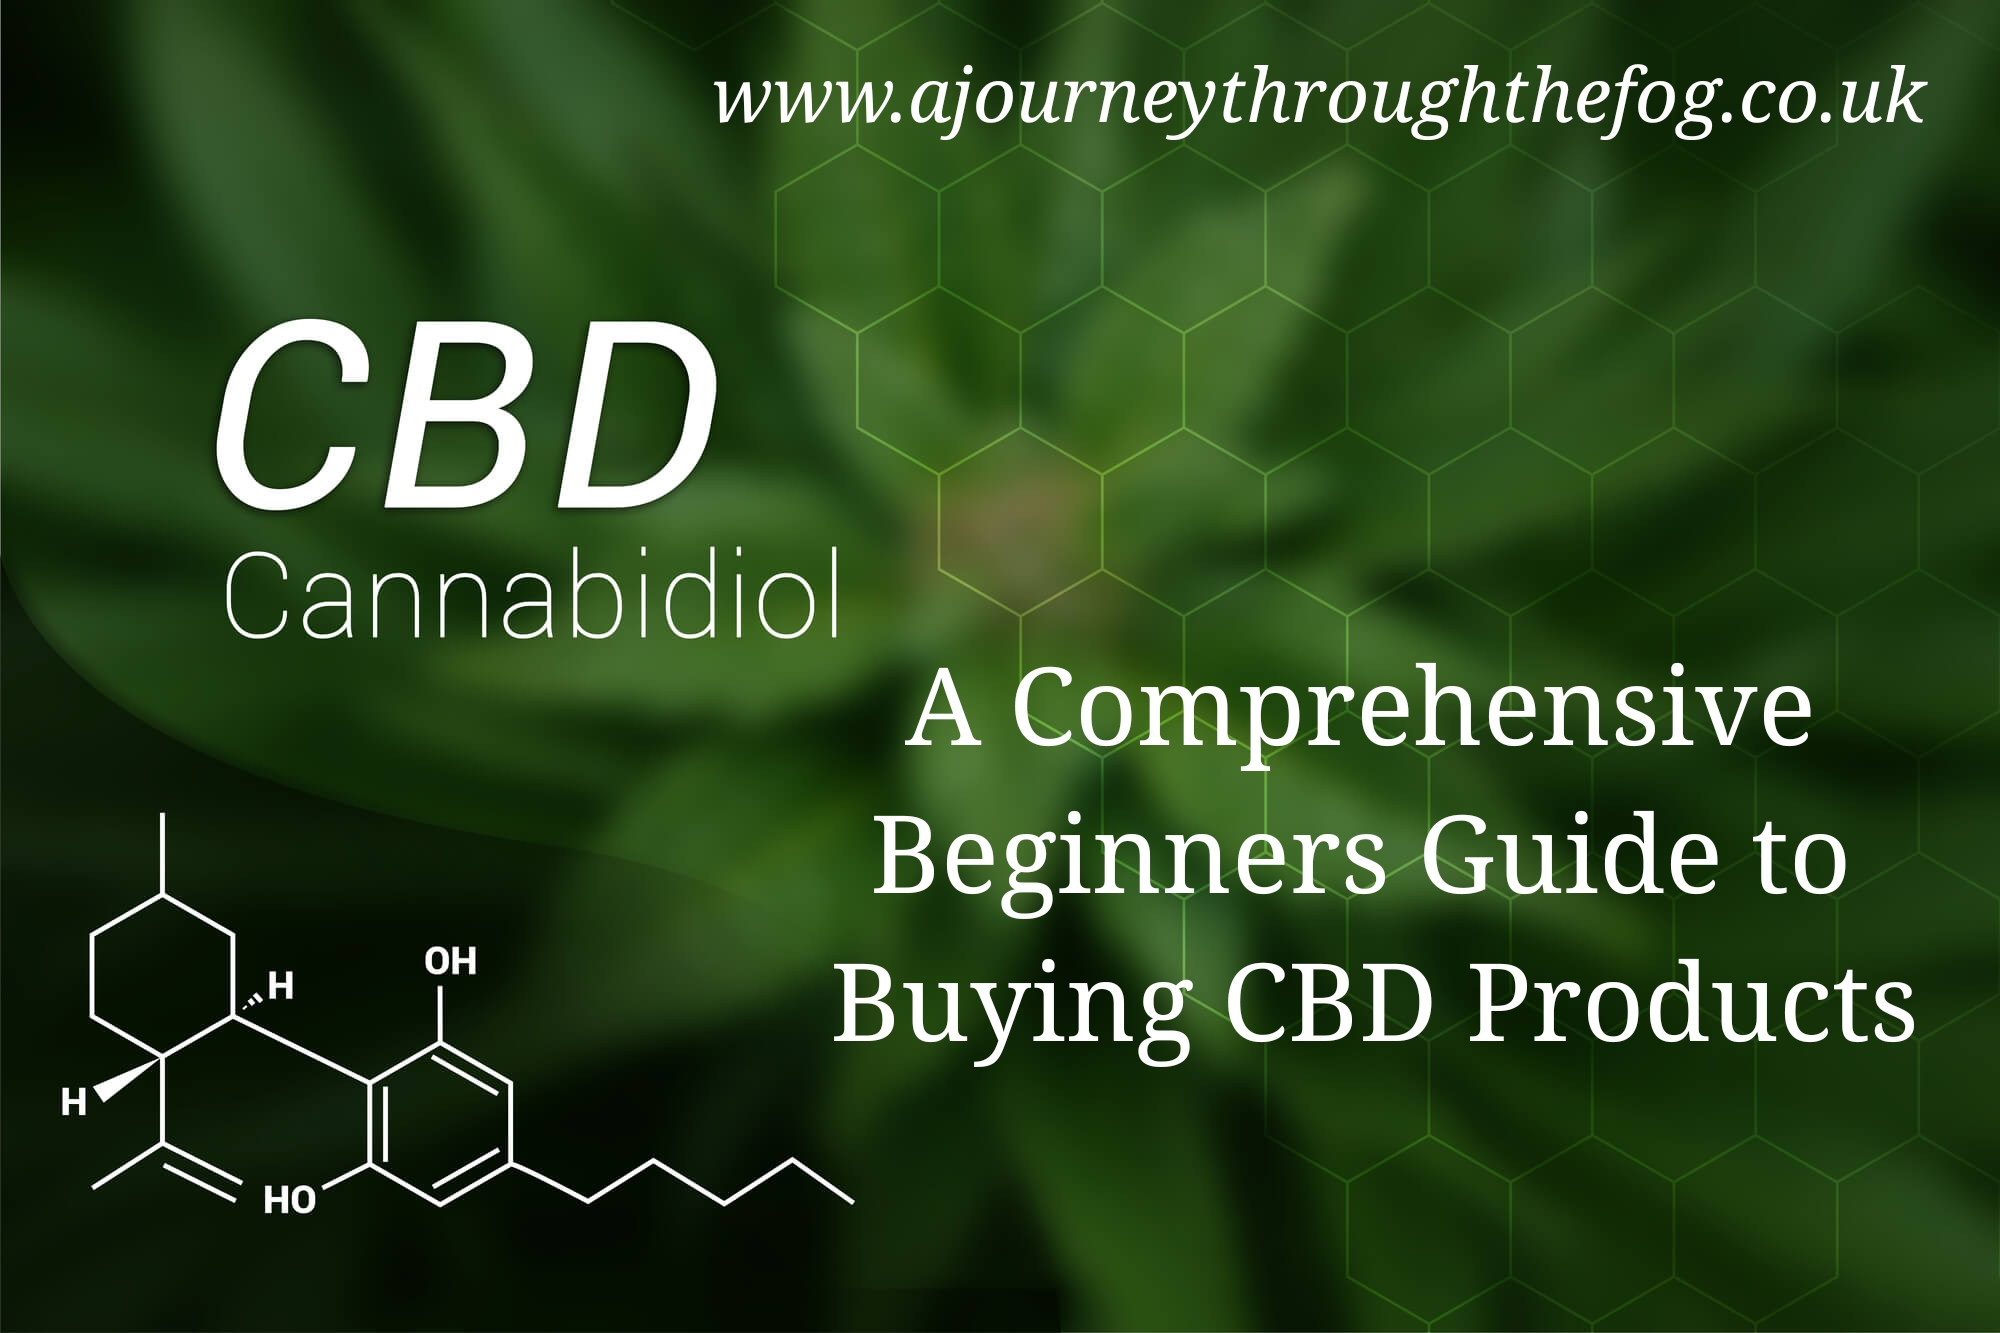 A Comprehensive Beginners Guide to Buying CBD Products – A